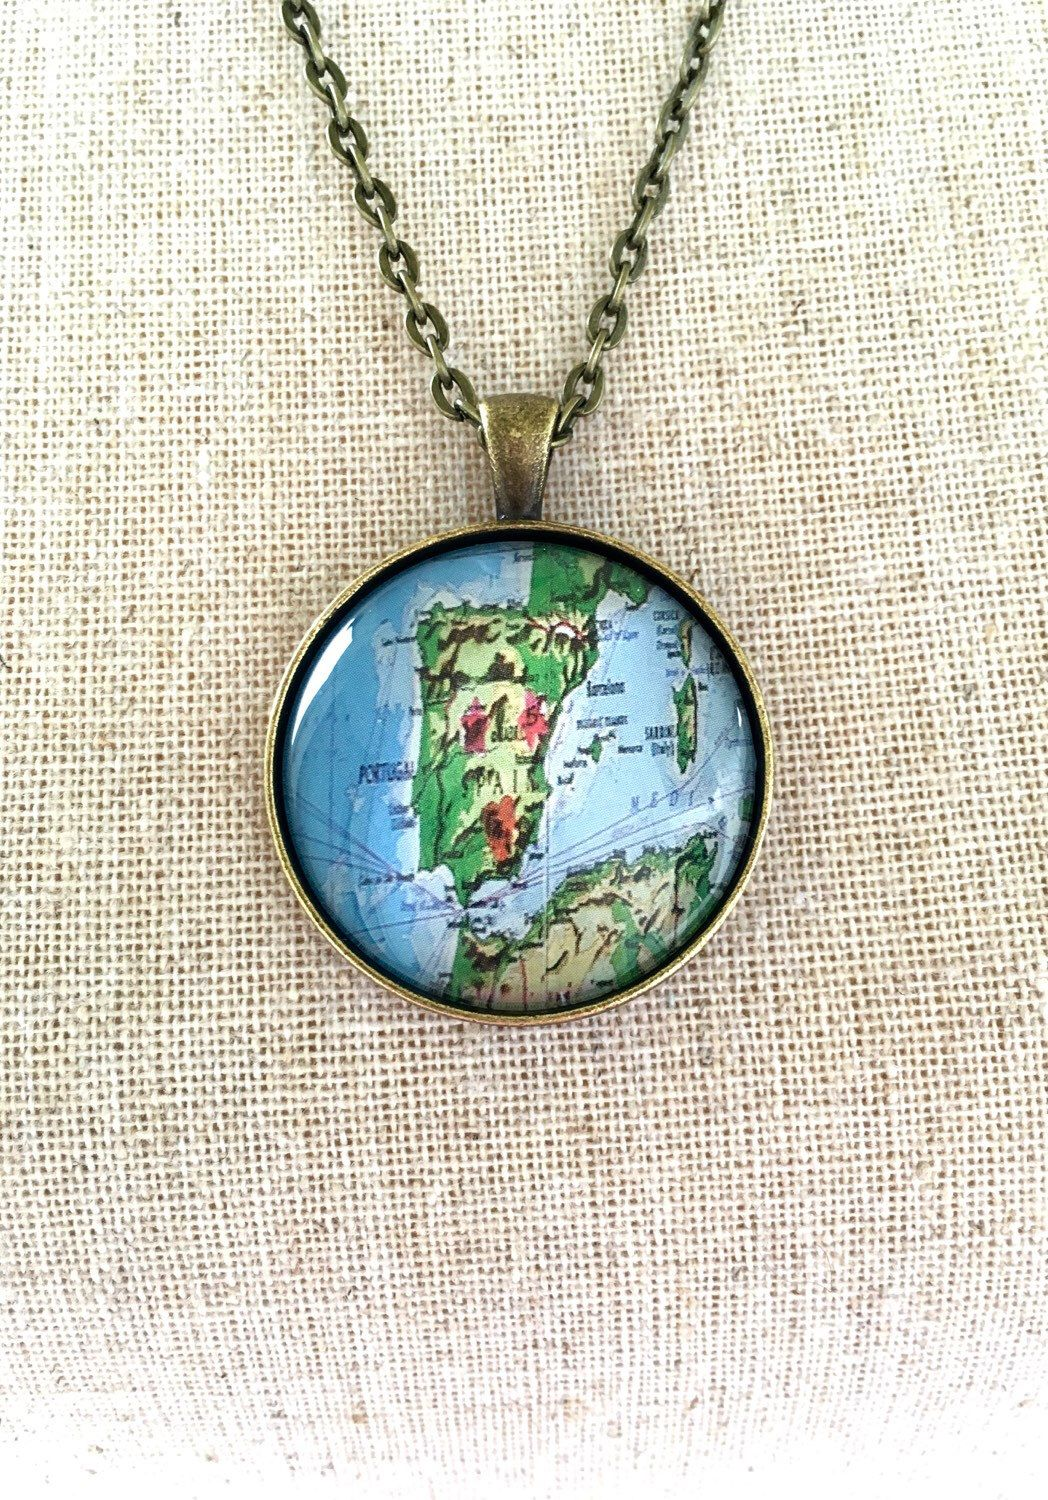 Spain world map globe necklace travel wanderlust unique gift globe necklace spain travel world map wanderlust unique by industrialwhimsy on etsy https gumiabroncs Image collections